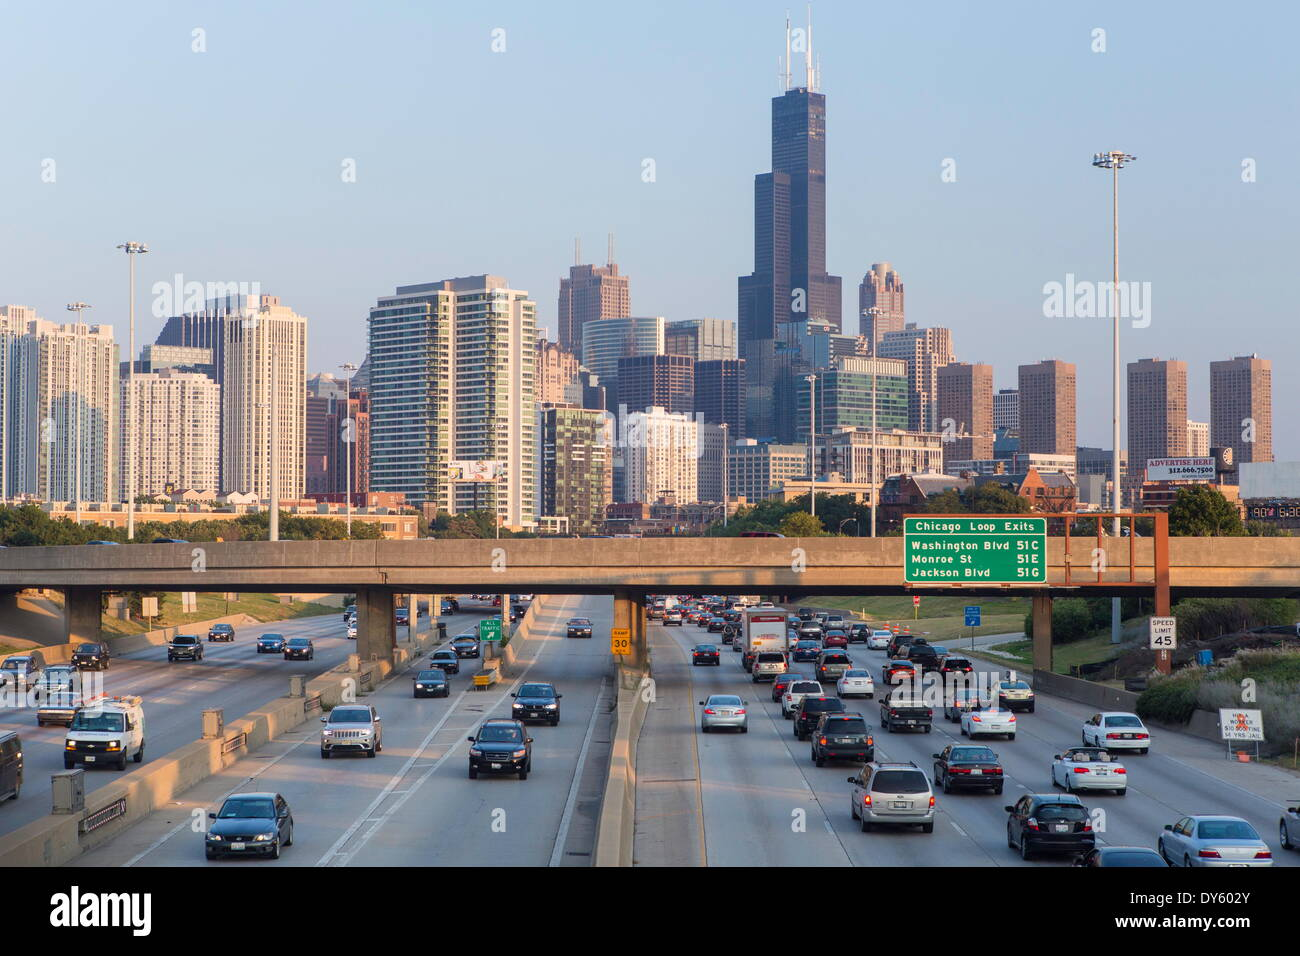 Interstate leading Downtown, Chicago, Illinois, United States of America, North America - Stock Image